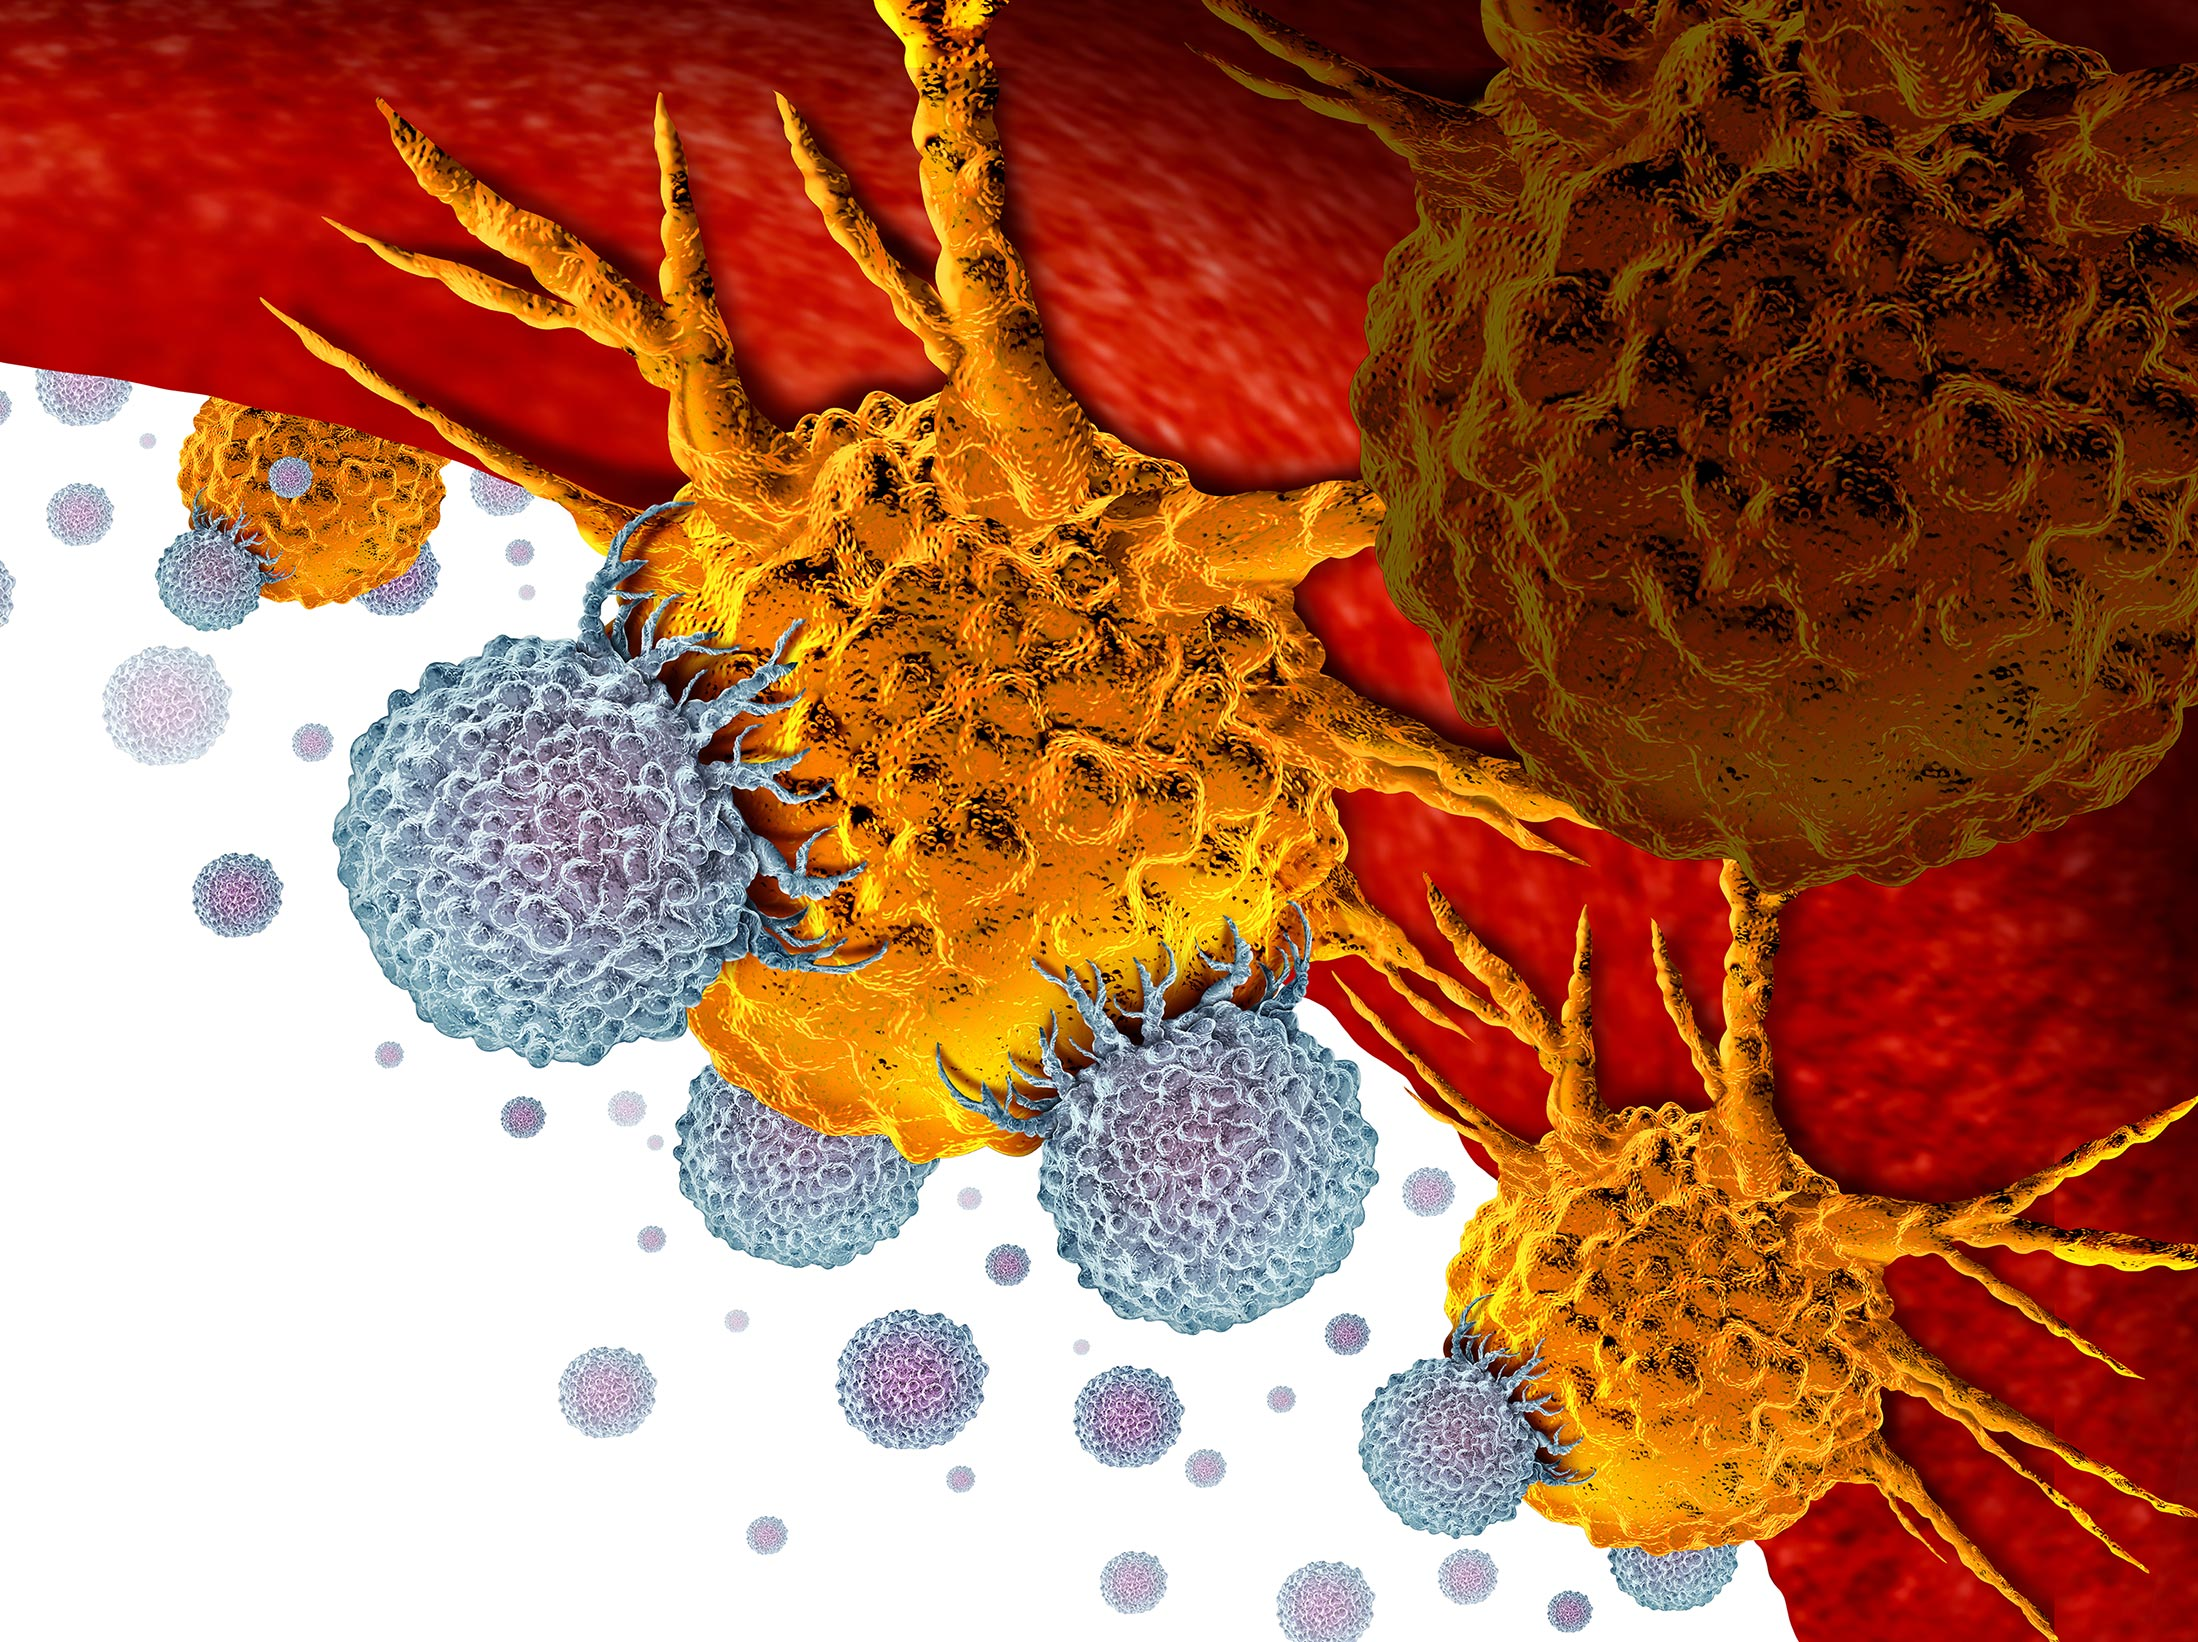 The Future of Drug Discovery: Live 3D Cell Analysis